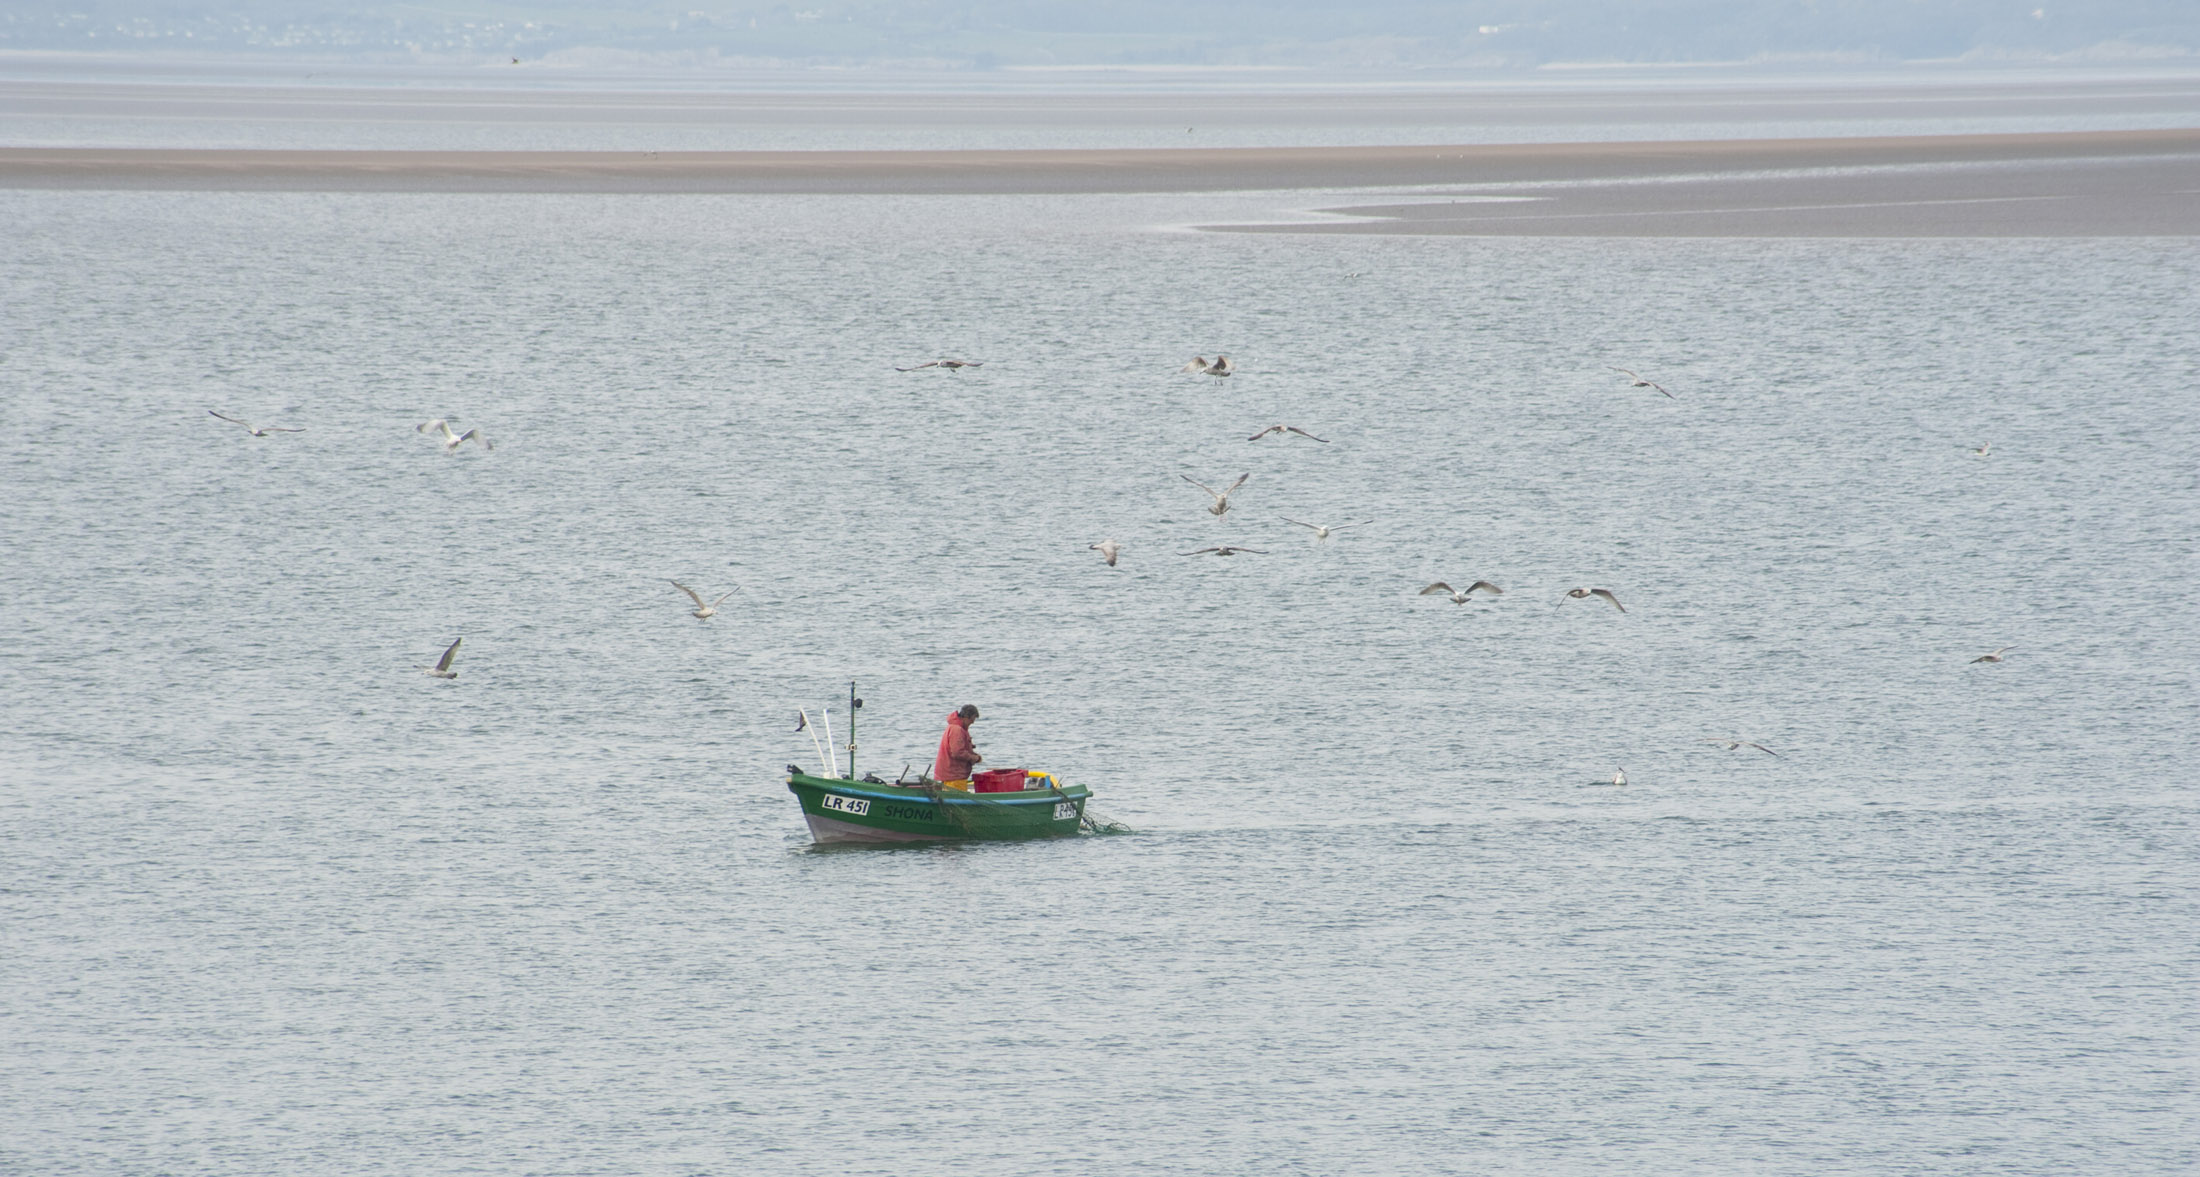 fishing from a small boat on morecambe bay